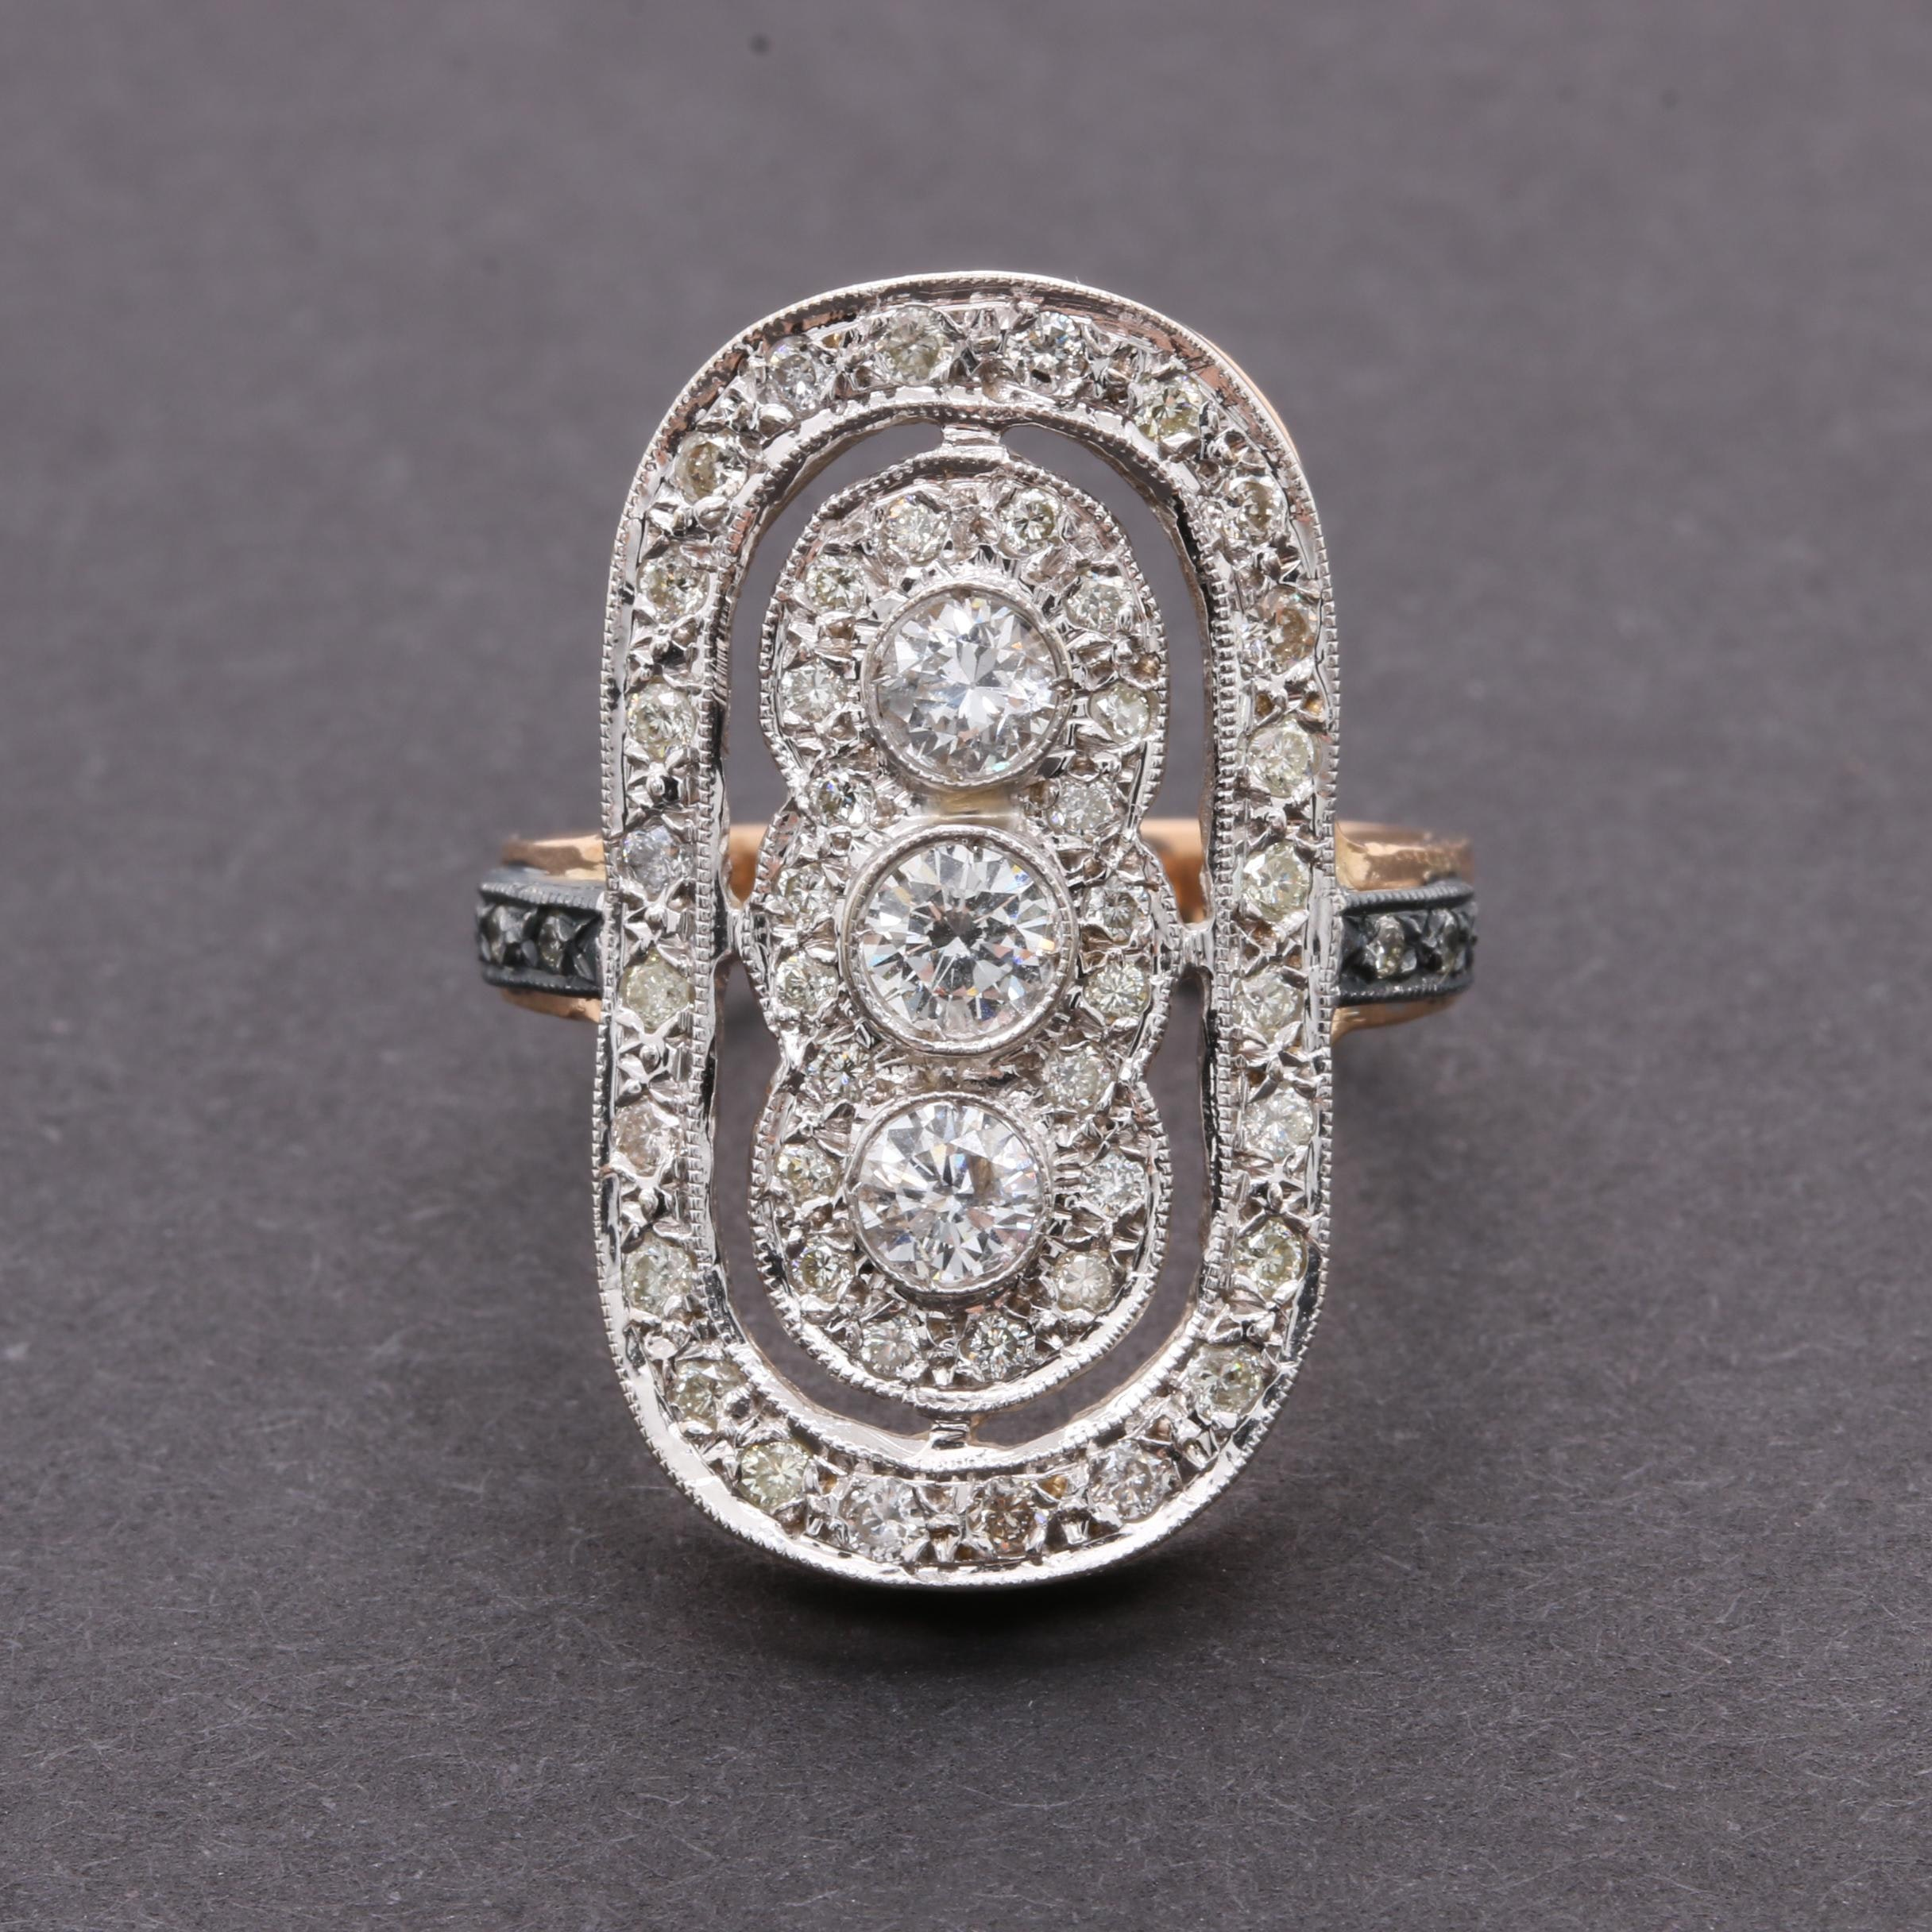 14K Yellow Gold 1.27 CTW Diamond Ring with 800 Silver Accents